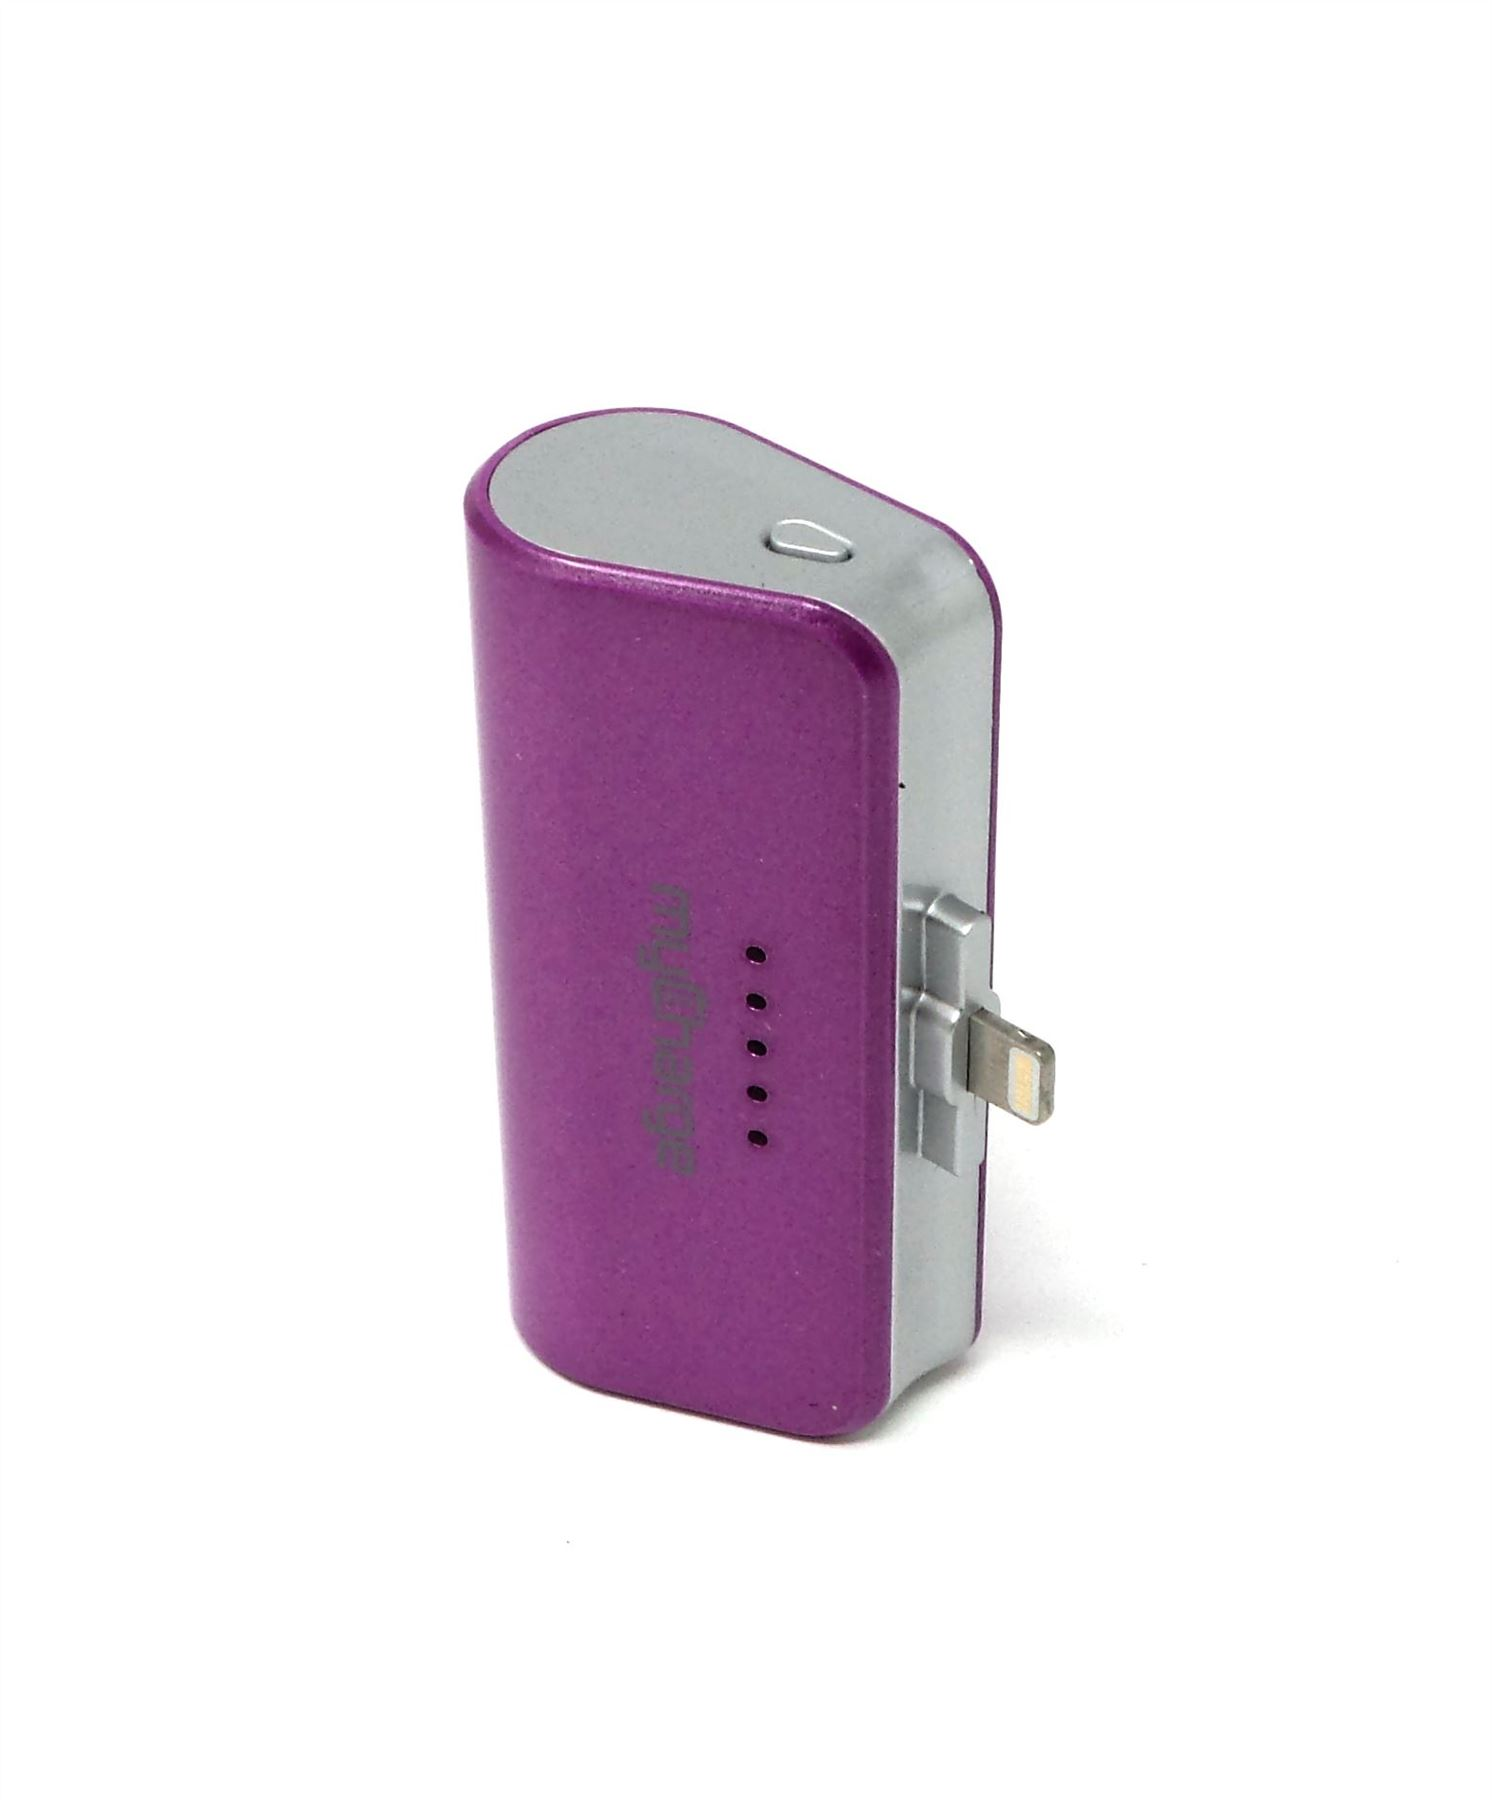 707680f725e301 myCharge Power Pack Portable Charger for iPhone Purple 2600mAh PPL26P-A